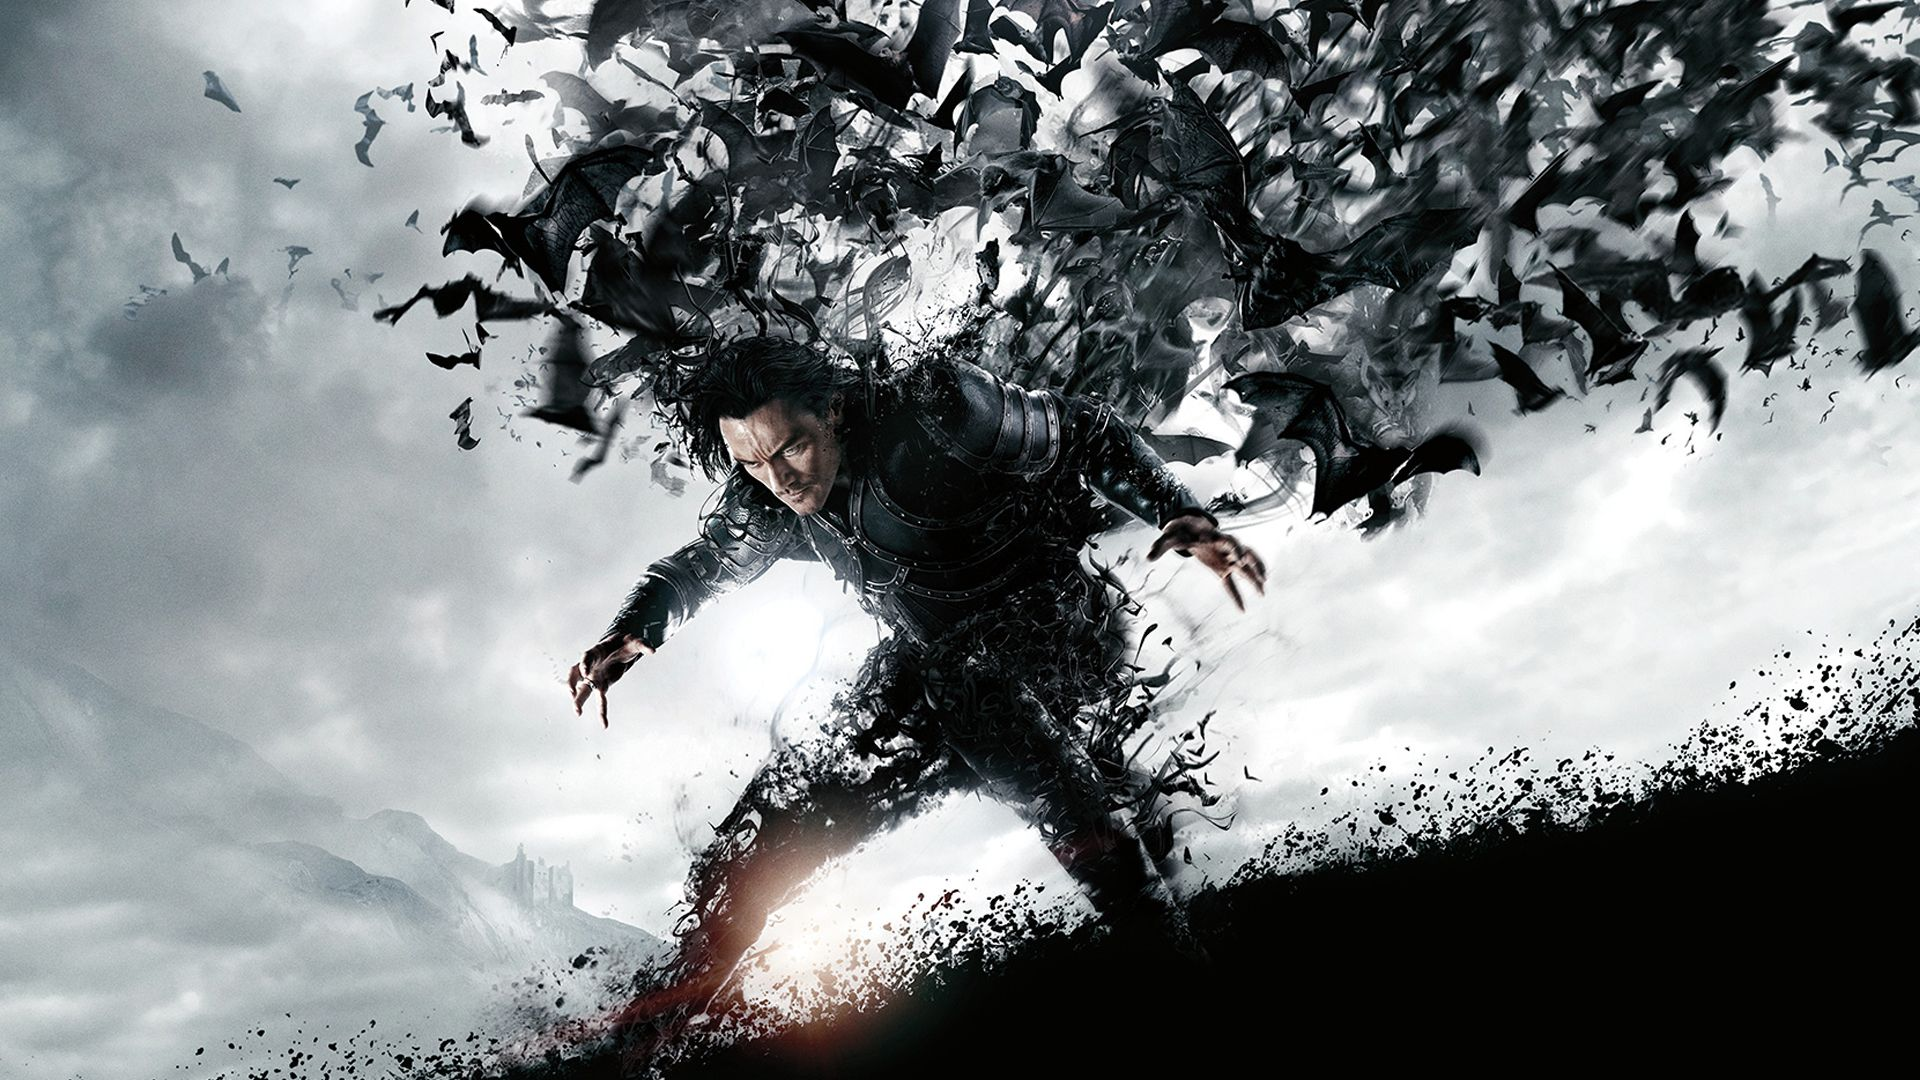 Dracula Untold Wallpaper 1920x1080 By Sachso74 On Deviantart Dracula Untold Vampire Movies Dracula